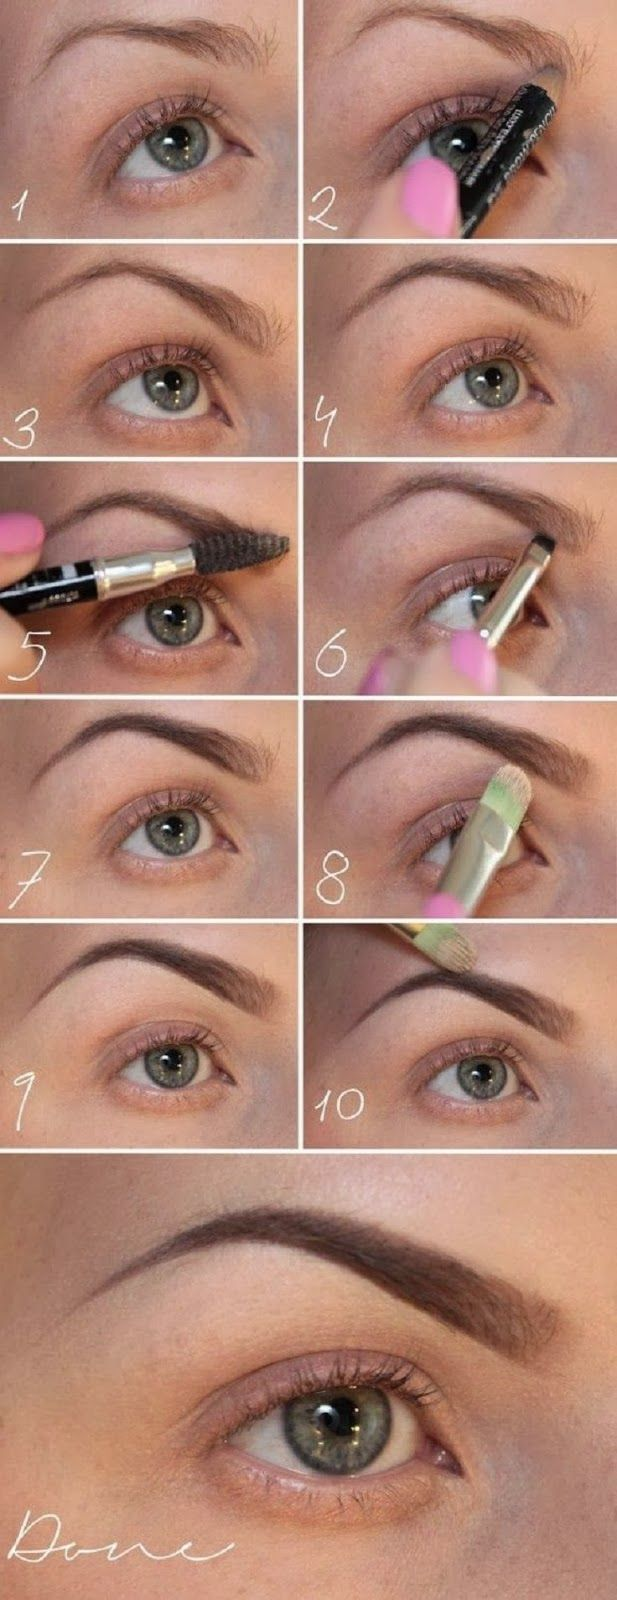 Perfect Eyebrows Tutorial...pretty close to what I do